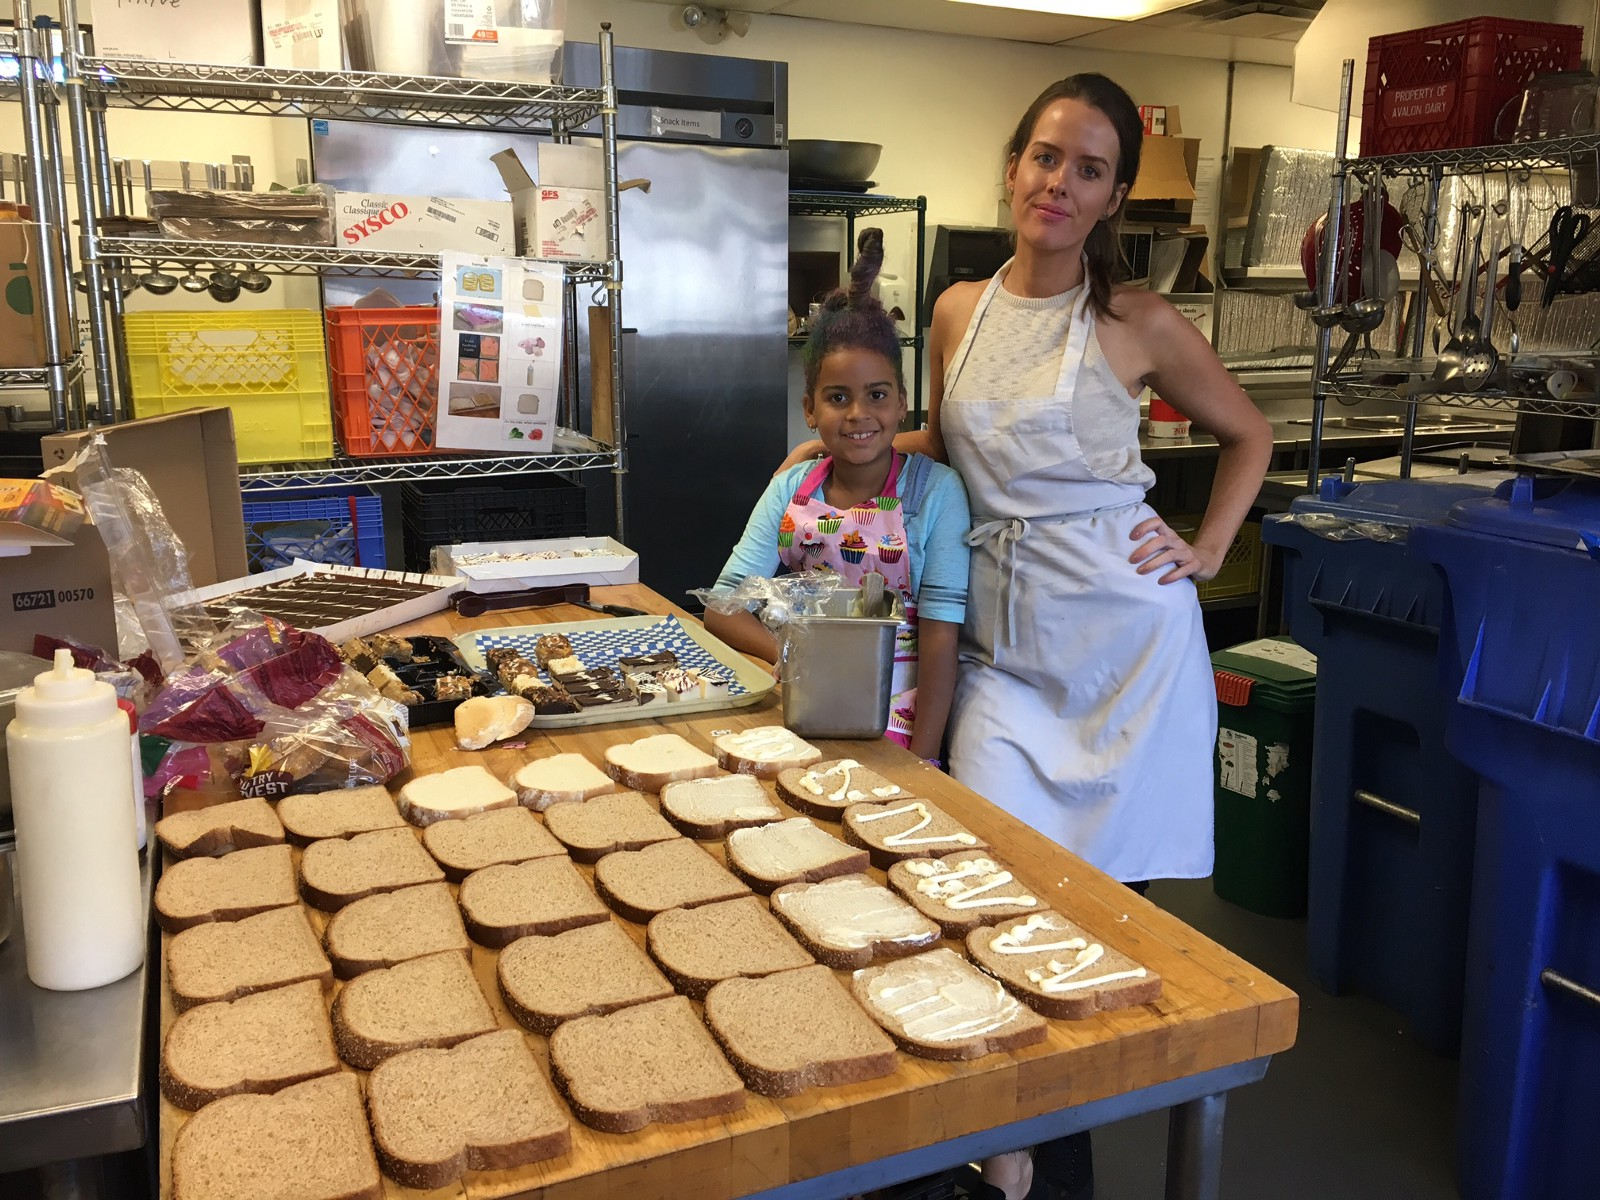 Lindsey and her daughter, Penelope, volunteering at the local Salvation Army.